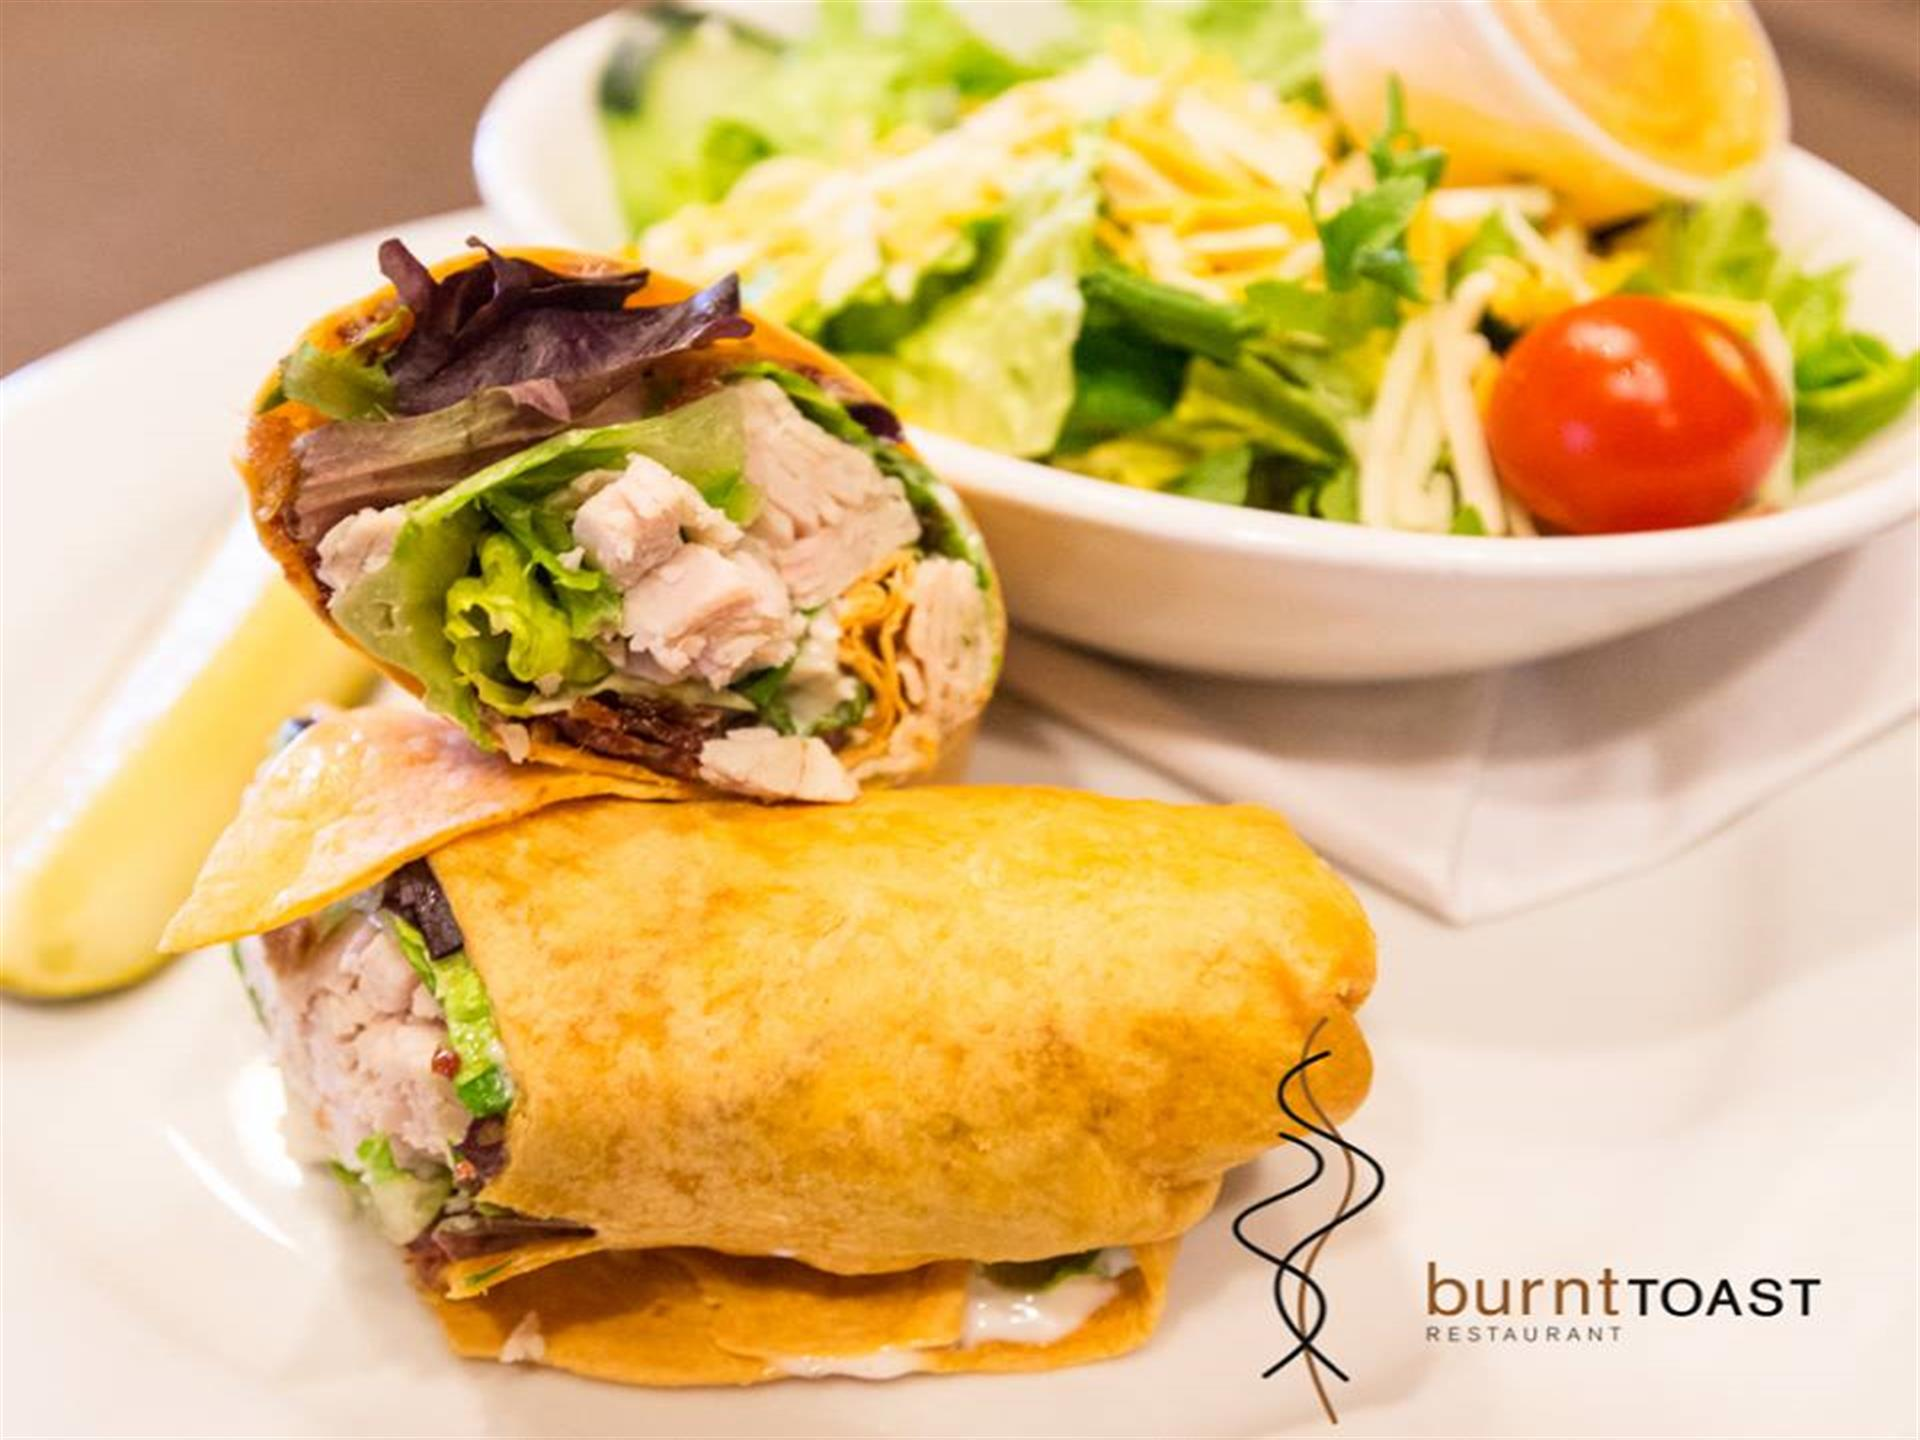 Wrap with chicken and lettuce cut in half with a side salad.